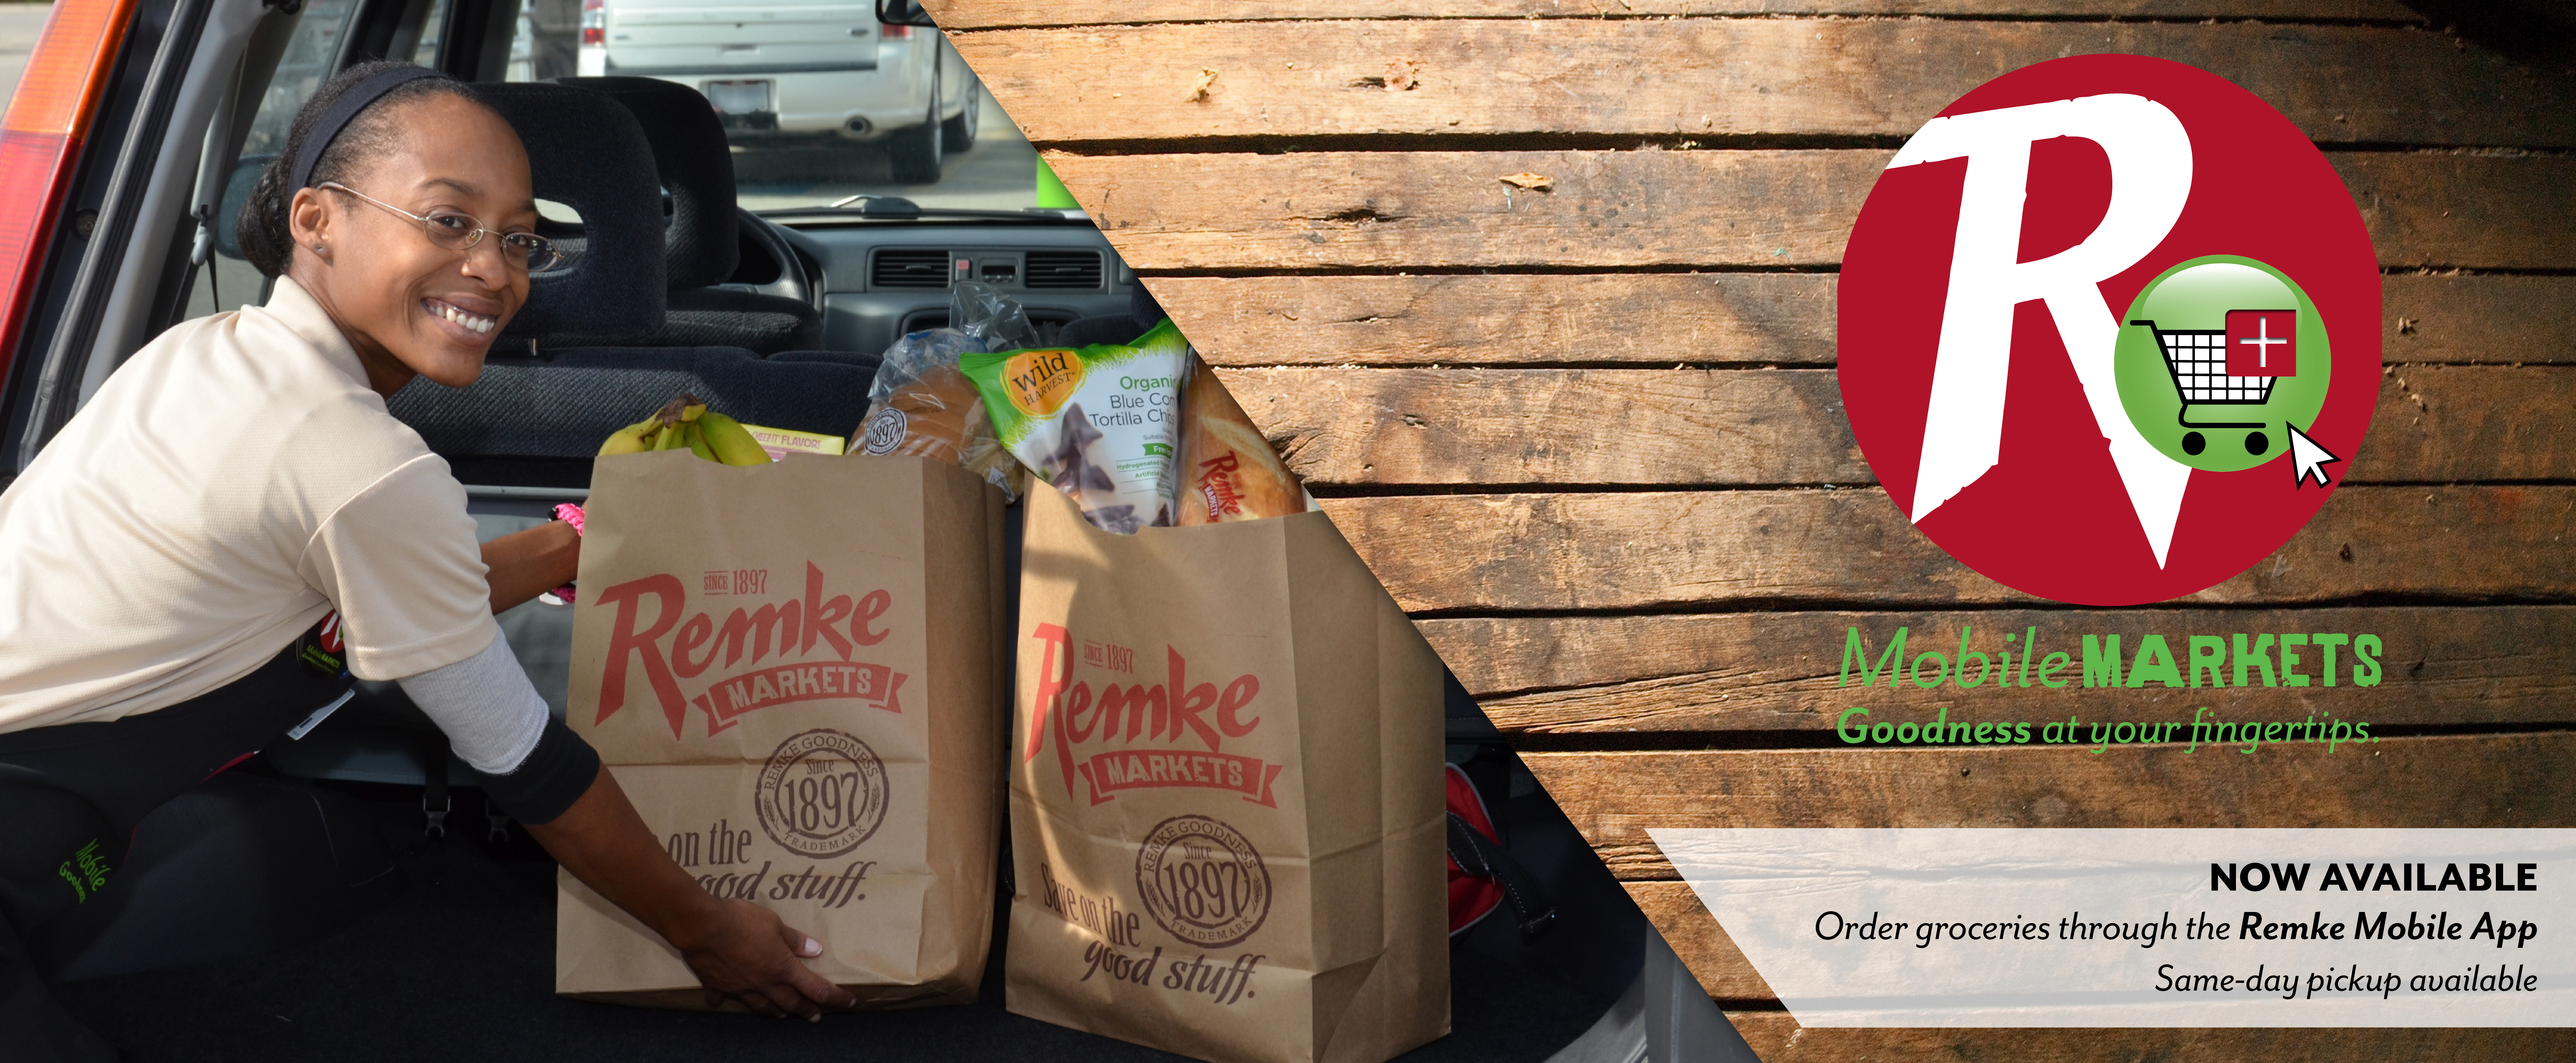 Remke Mobile Markets - Order groceries online today, pick up today